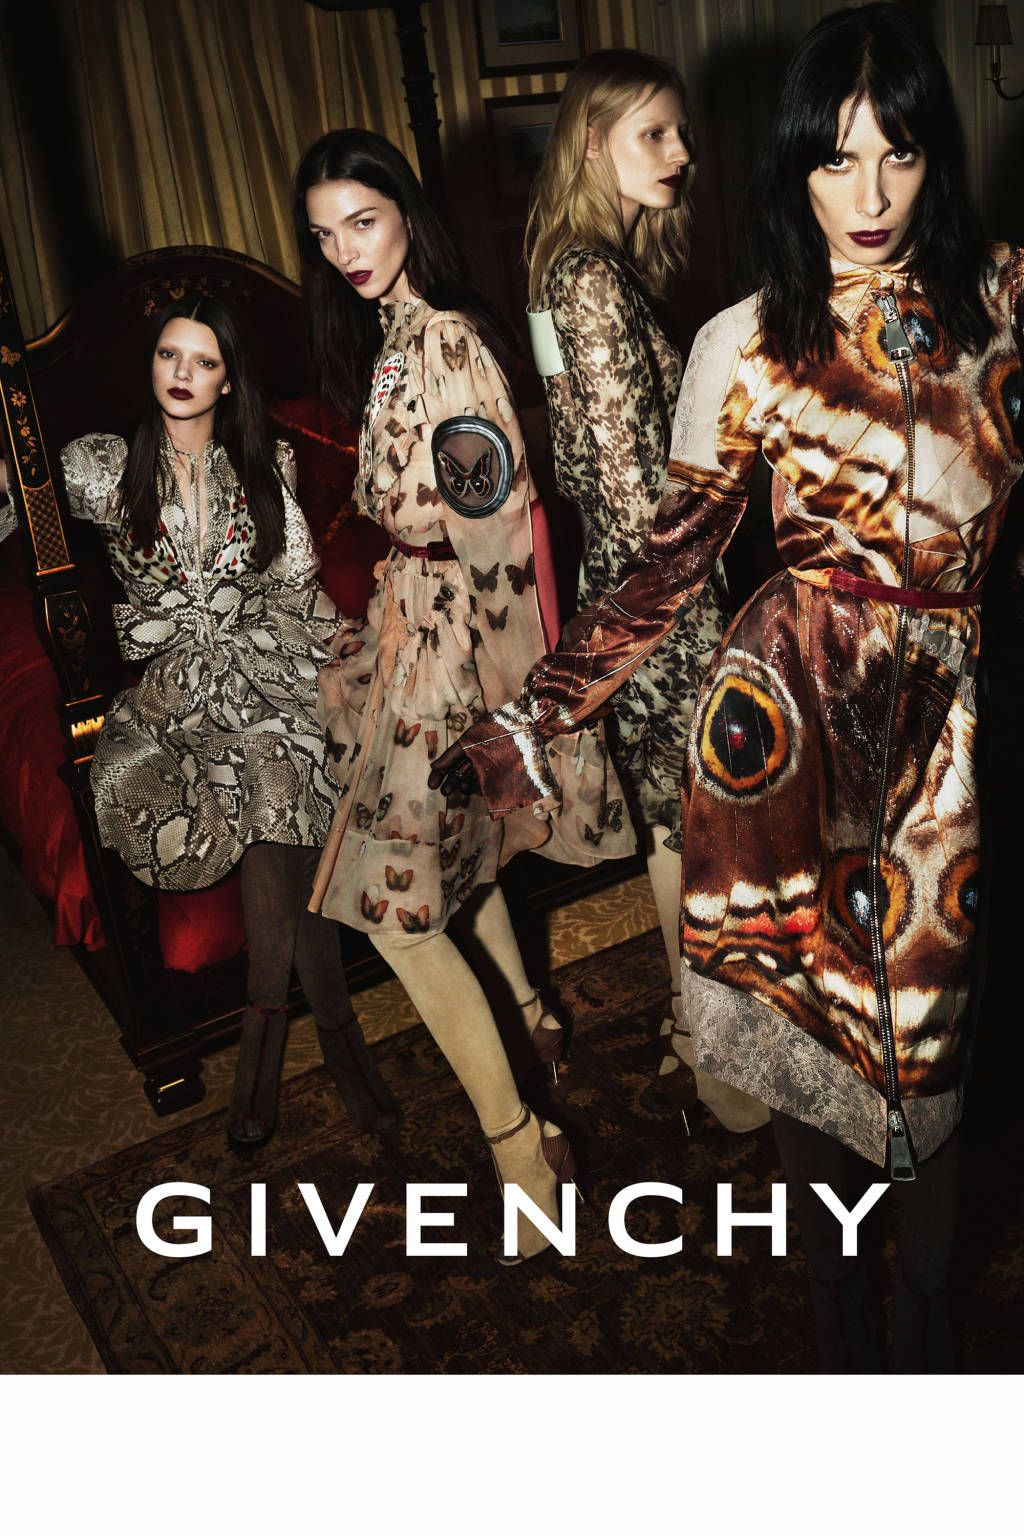 Fall givenchy campaign